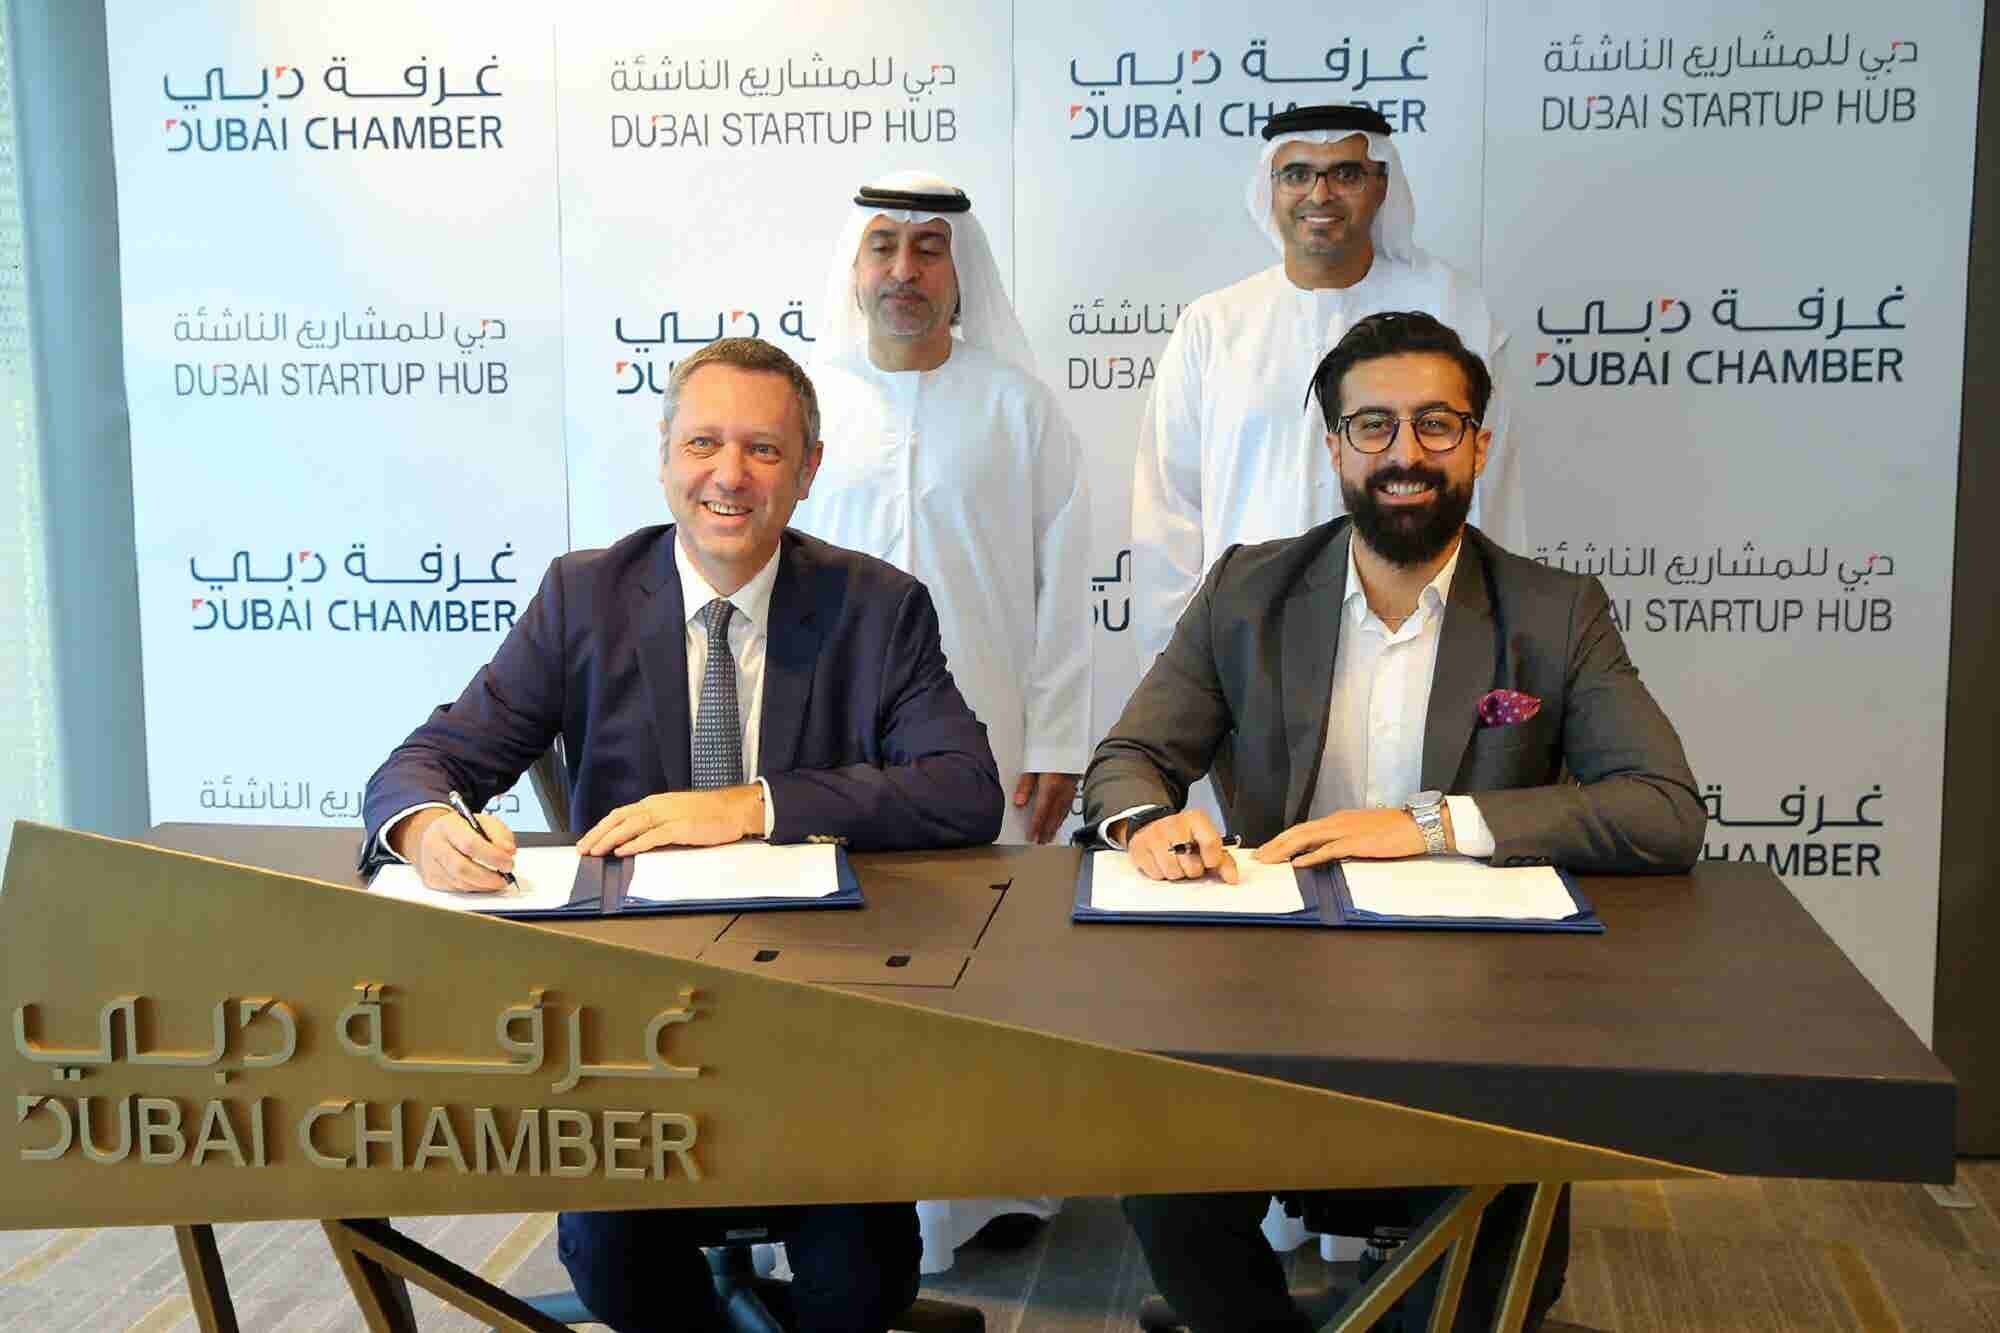 Startups Clinch Deals With Corporates As Part Of Dubai Startup Hub's Market Access Program